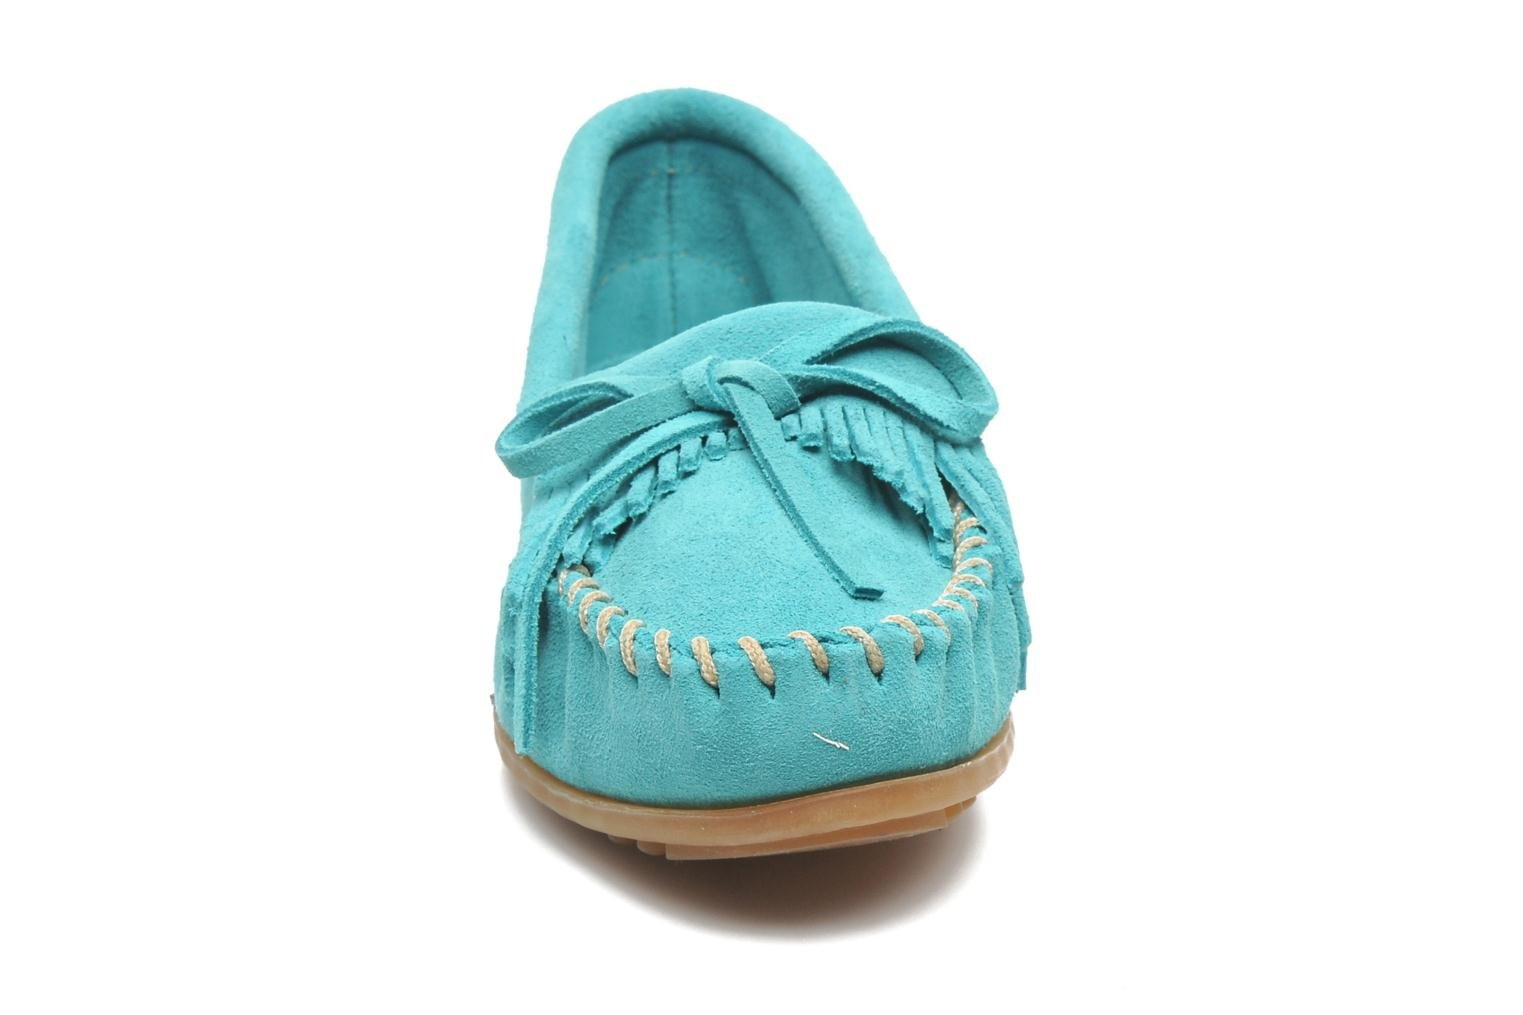 KILTY SUEDE MOC TURQUOISE SUEDE